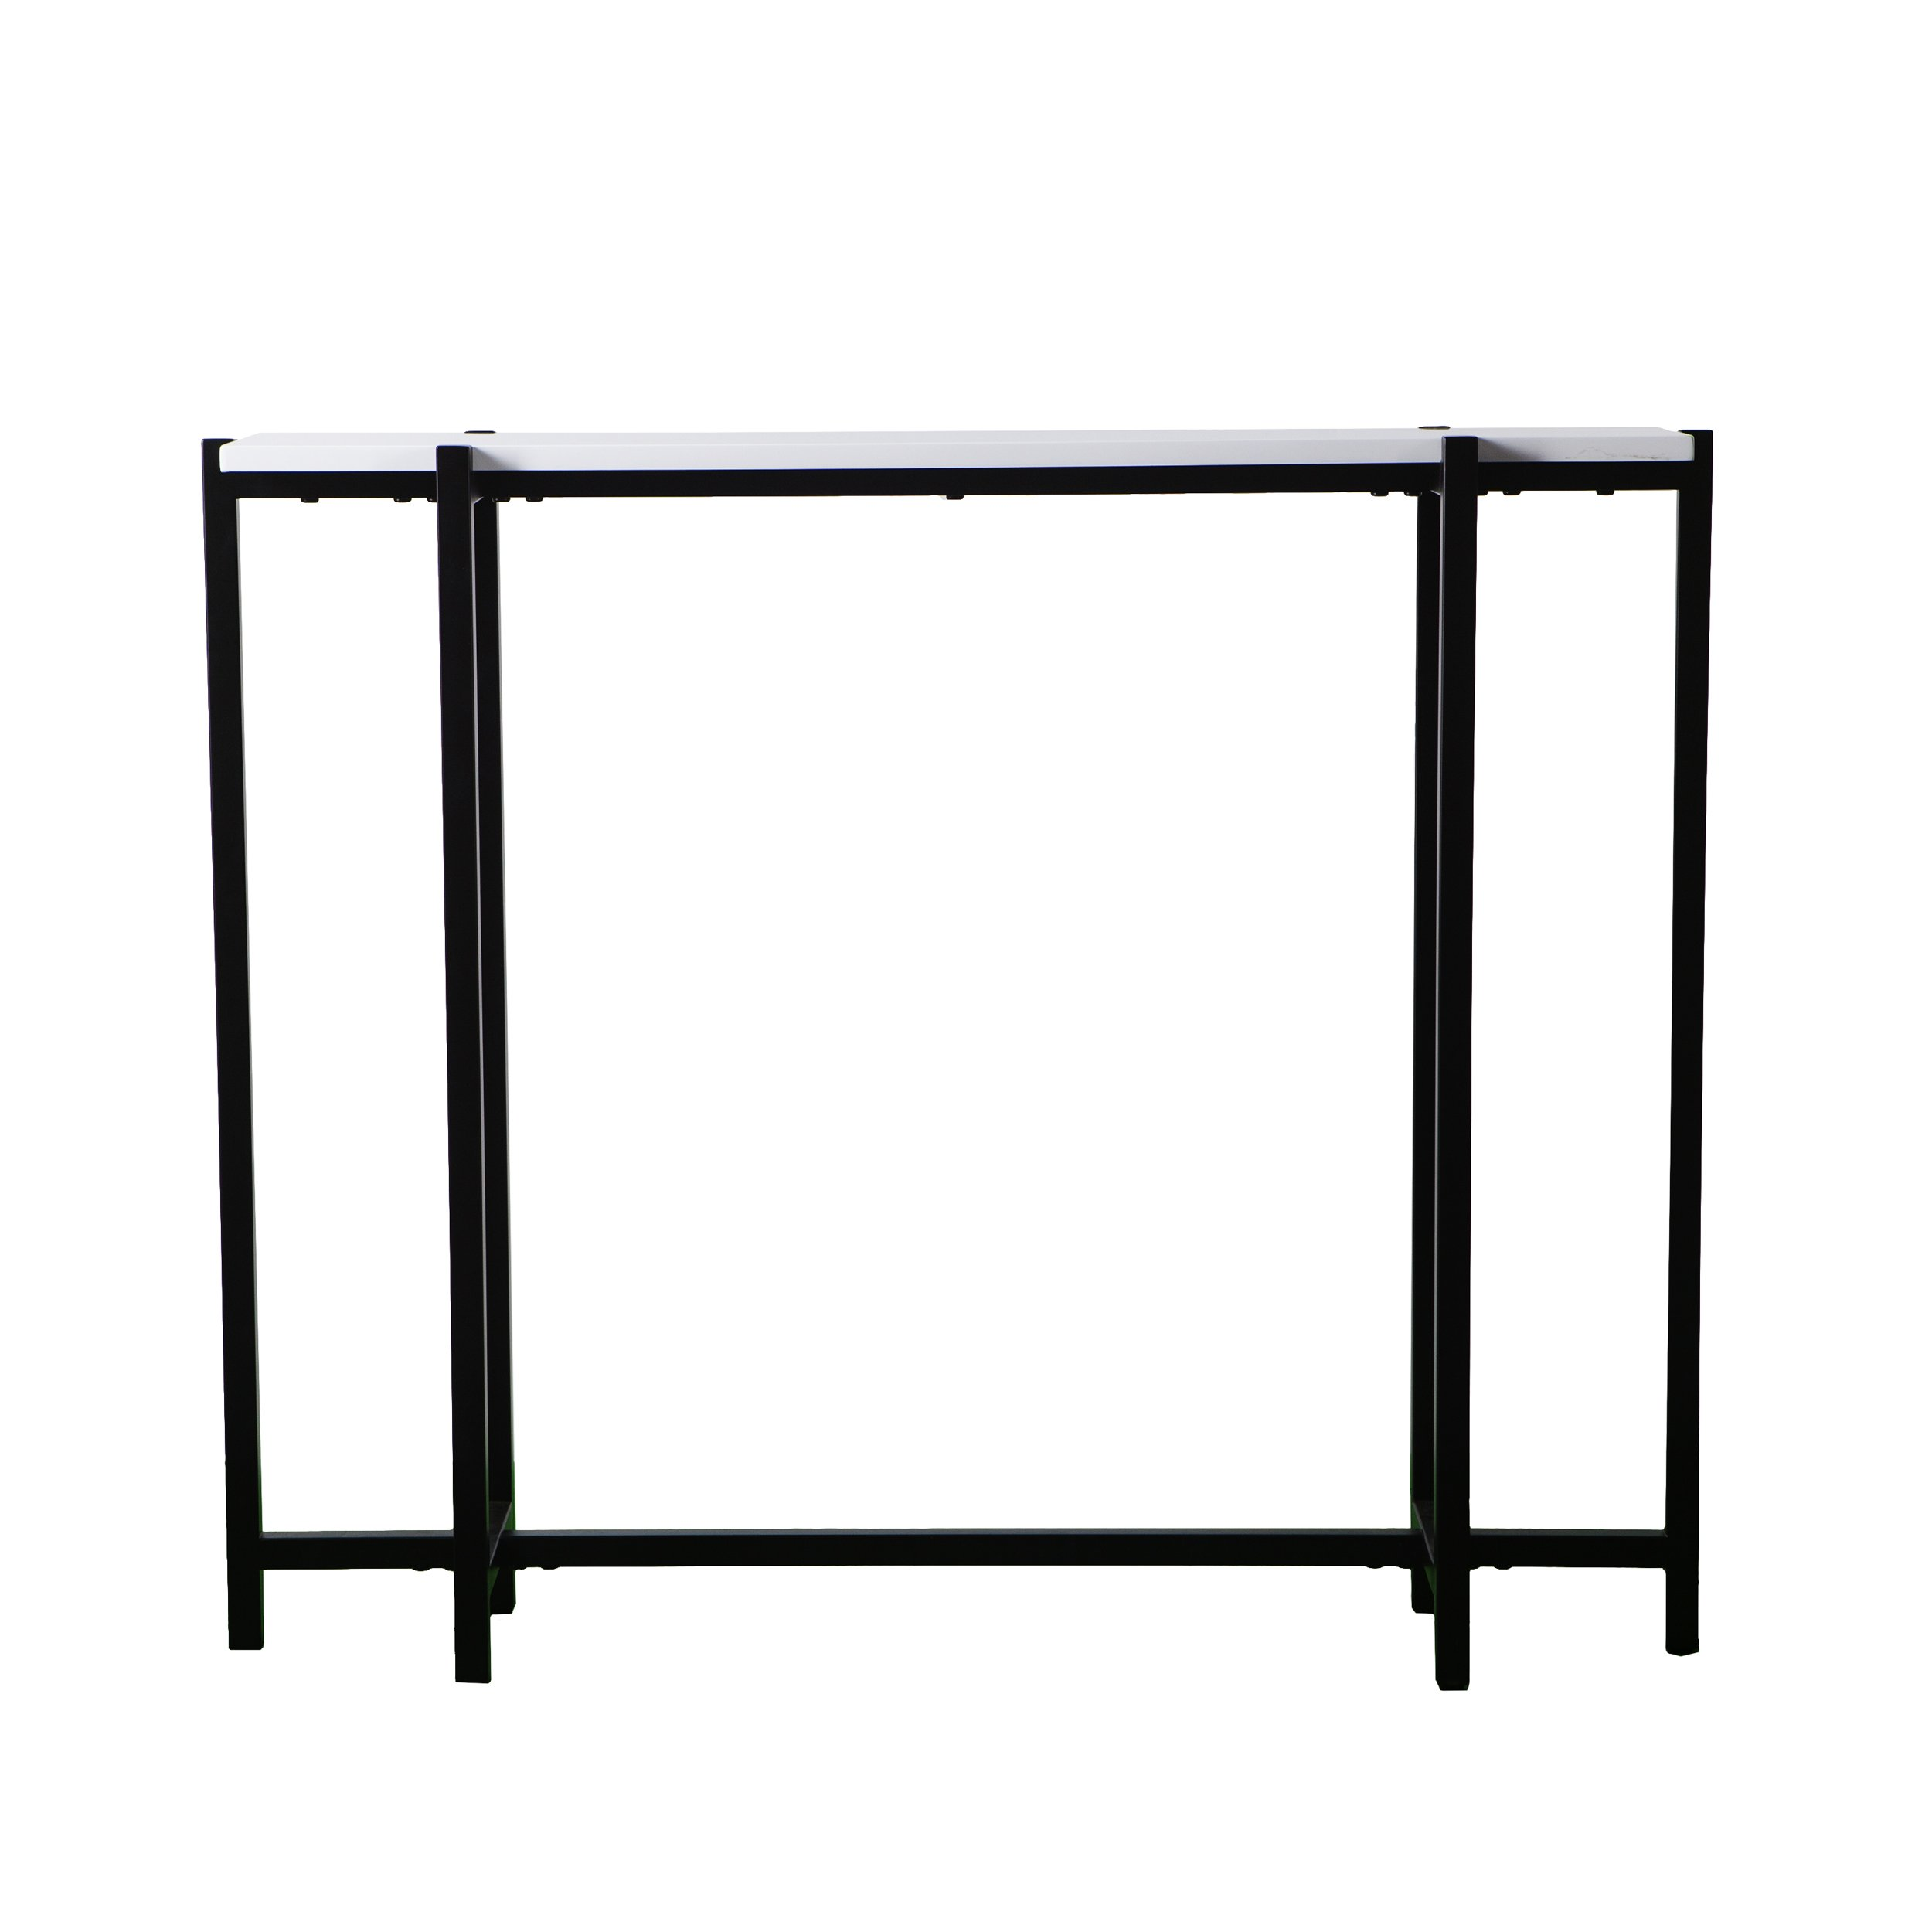 Narrow Skinny Console Table - Black Metal Frame w/White Top - Modern Entryway by Furniture HotSpot